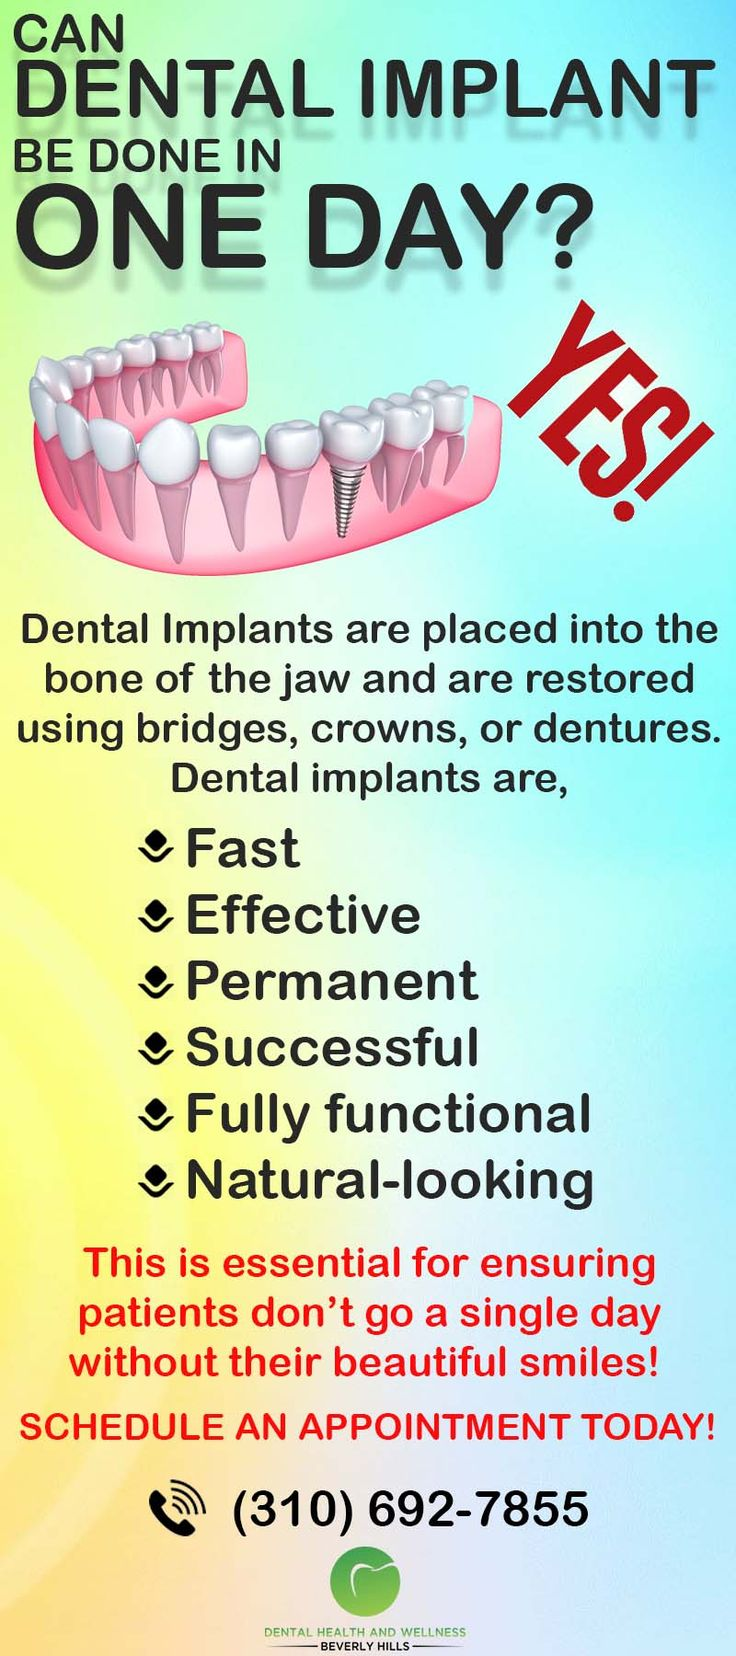 do southpointe family map ne lincoln payment and affordable toothache dentures need dental in options s treatment pressure cosmetic children dentist implant cost sinus you